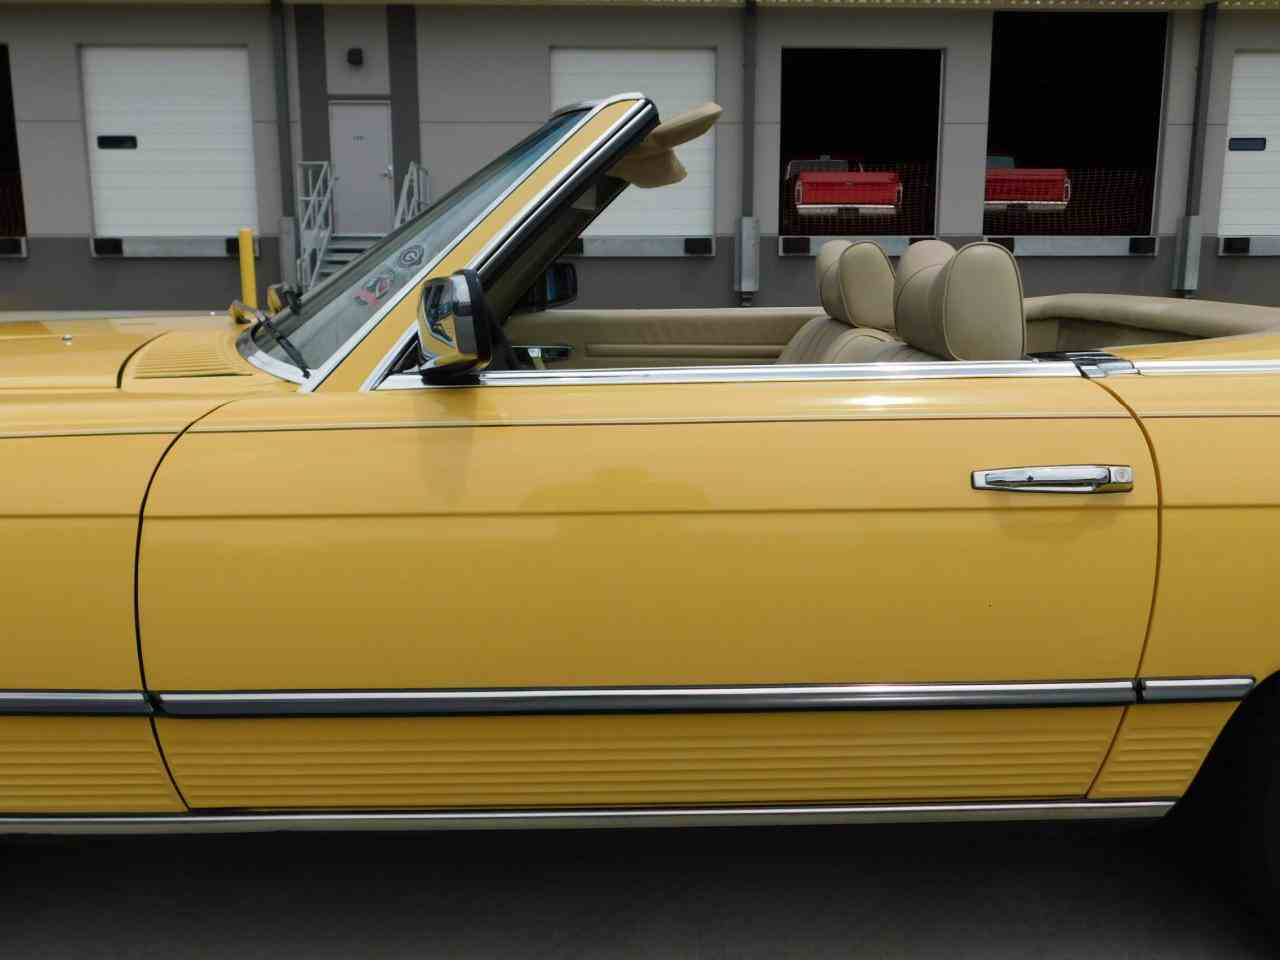 Large Picture of 1979 Mercedes-Benz 450SL located in Georgia - $19,995.00 Offered by Gateway Classic Cars - Atlanta - LLVV